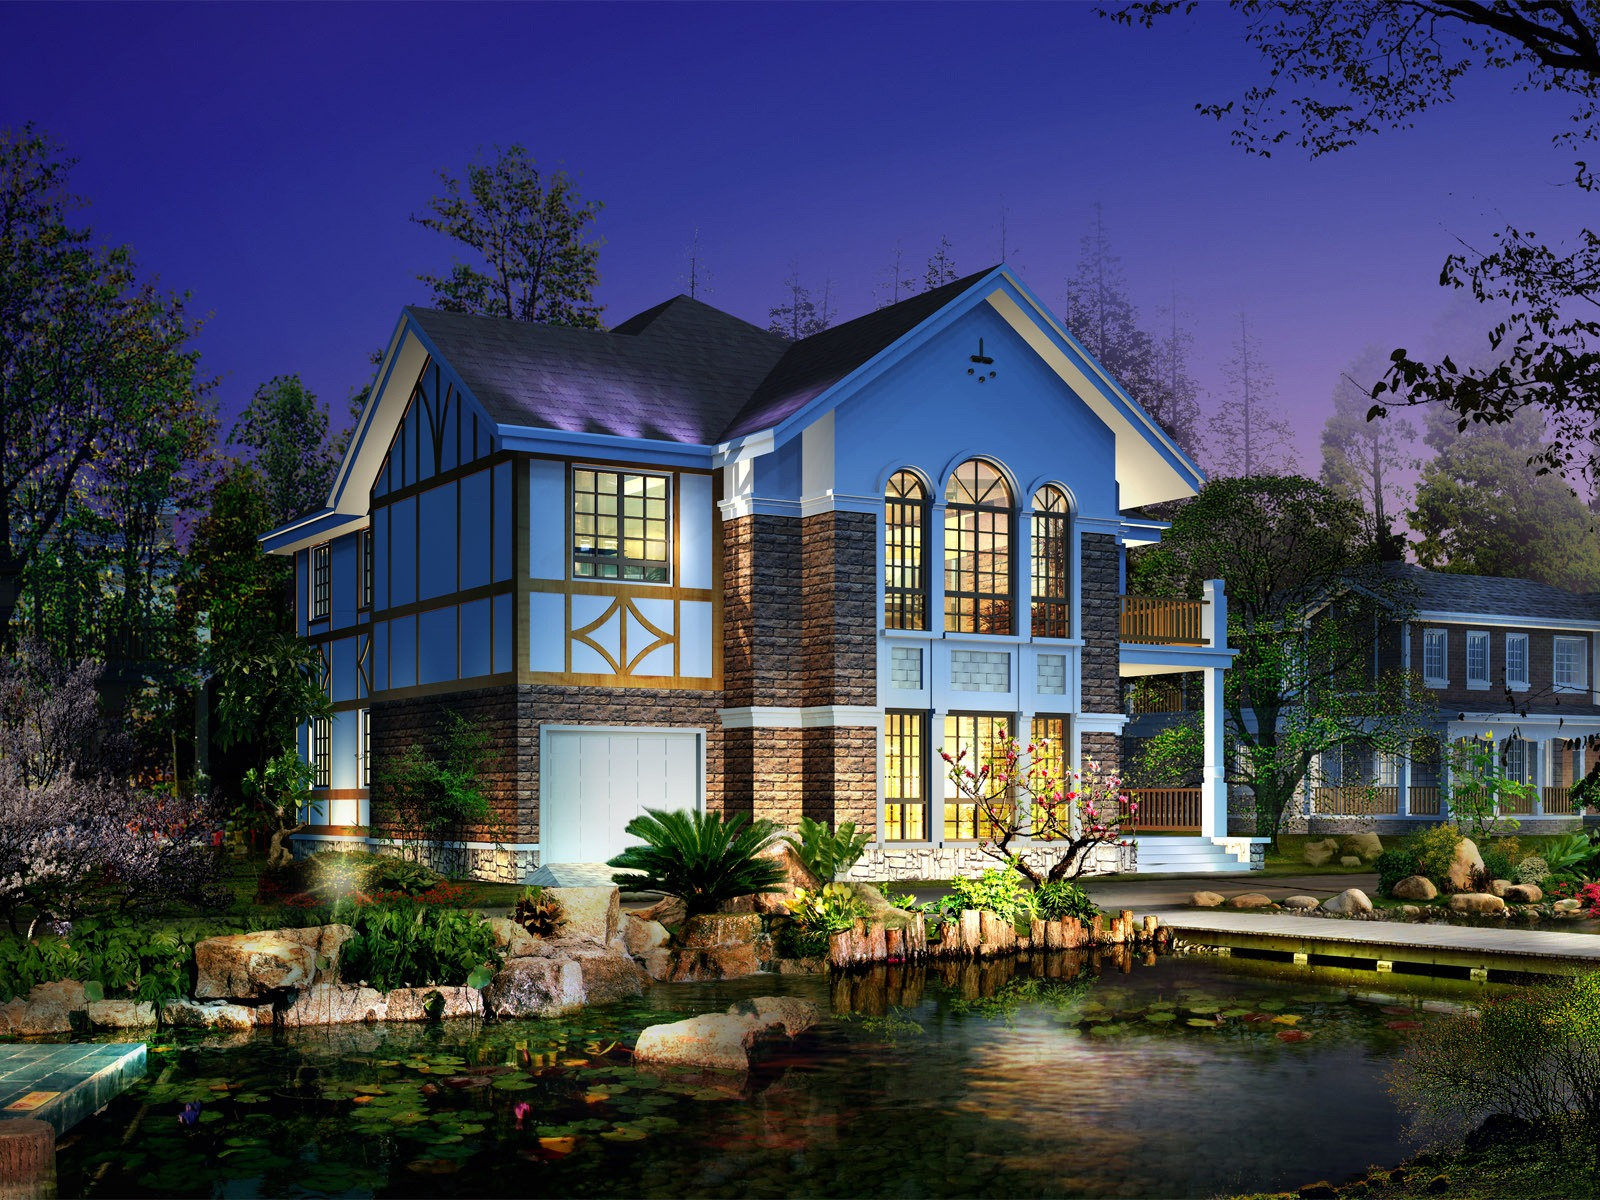 3D House Wallpaper Architecture Other Wallpapers In Jpg